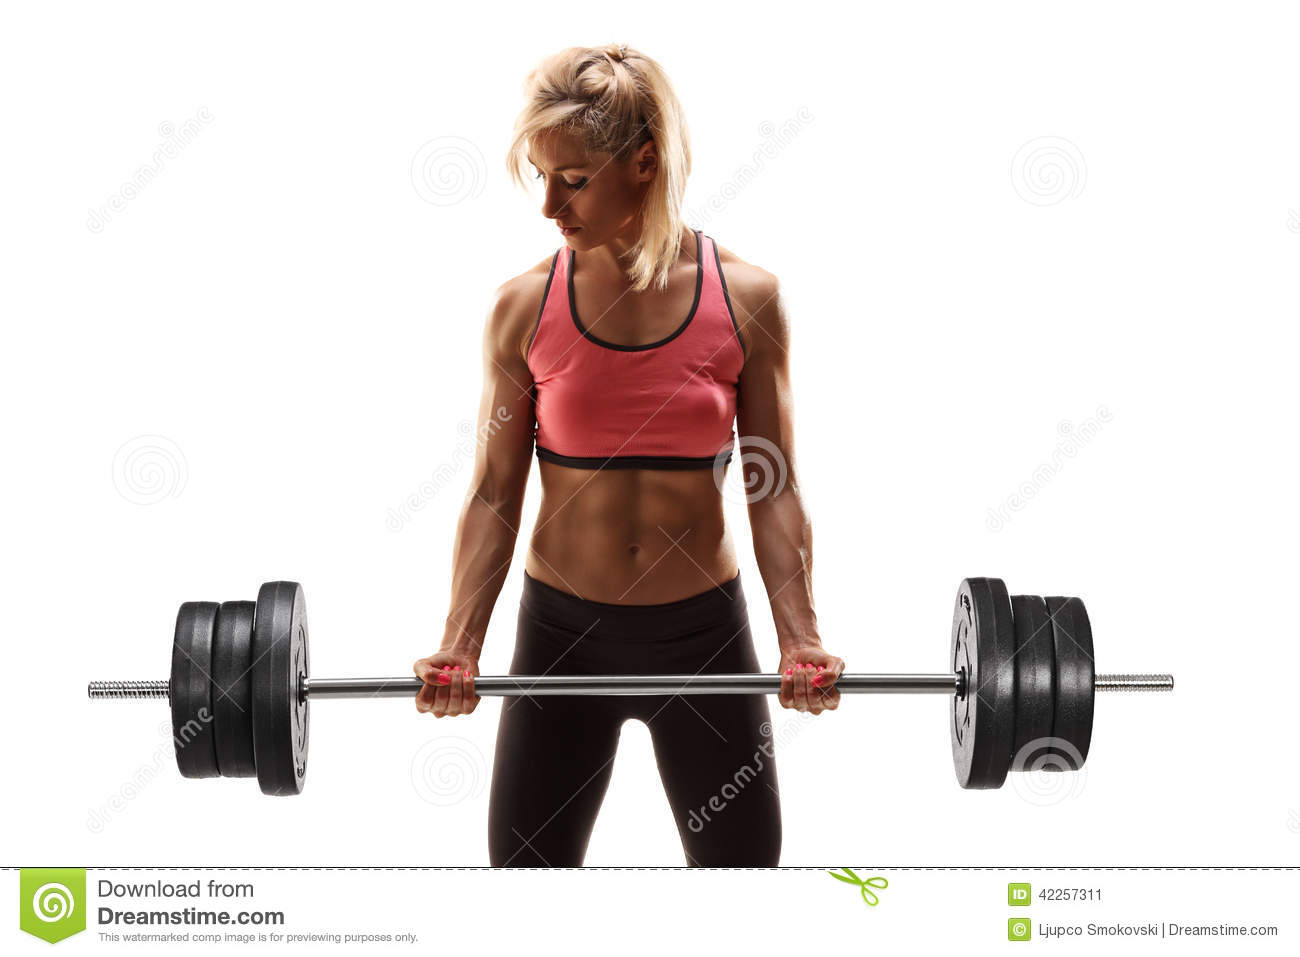 Amateur weight lifting pics galleries